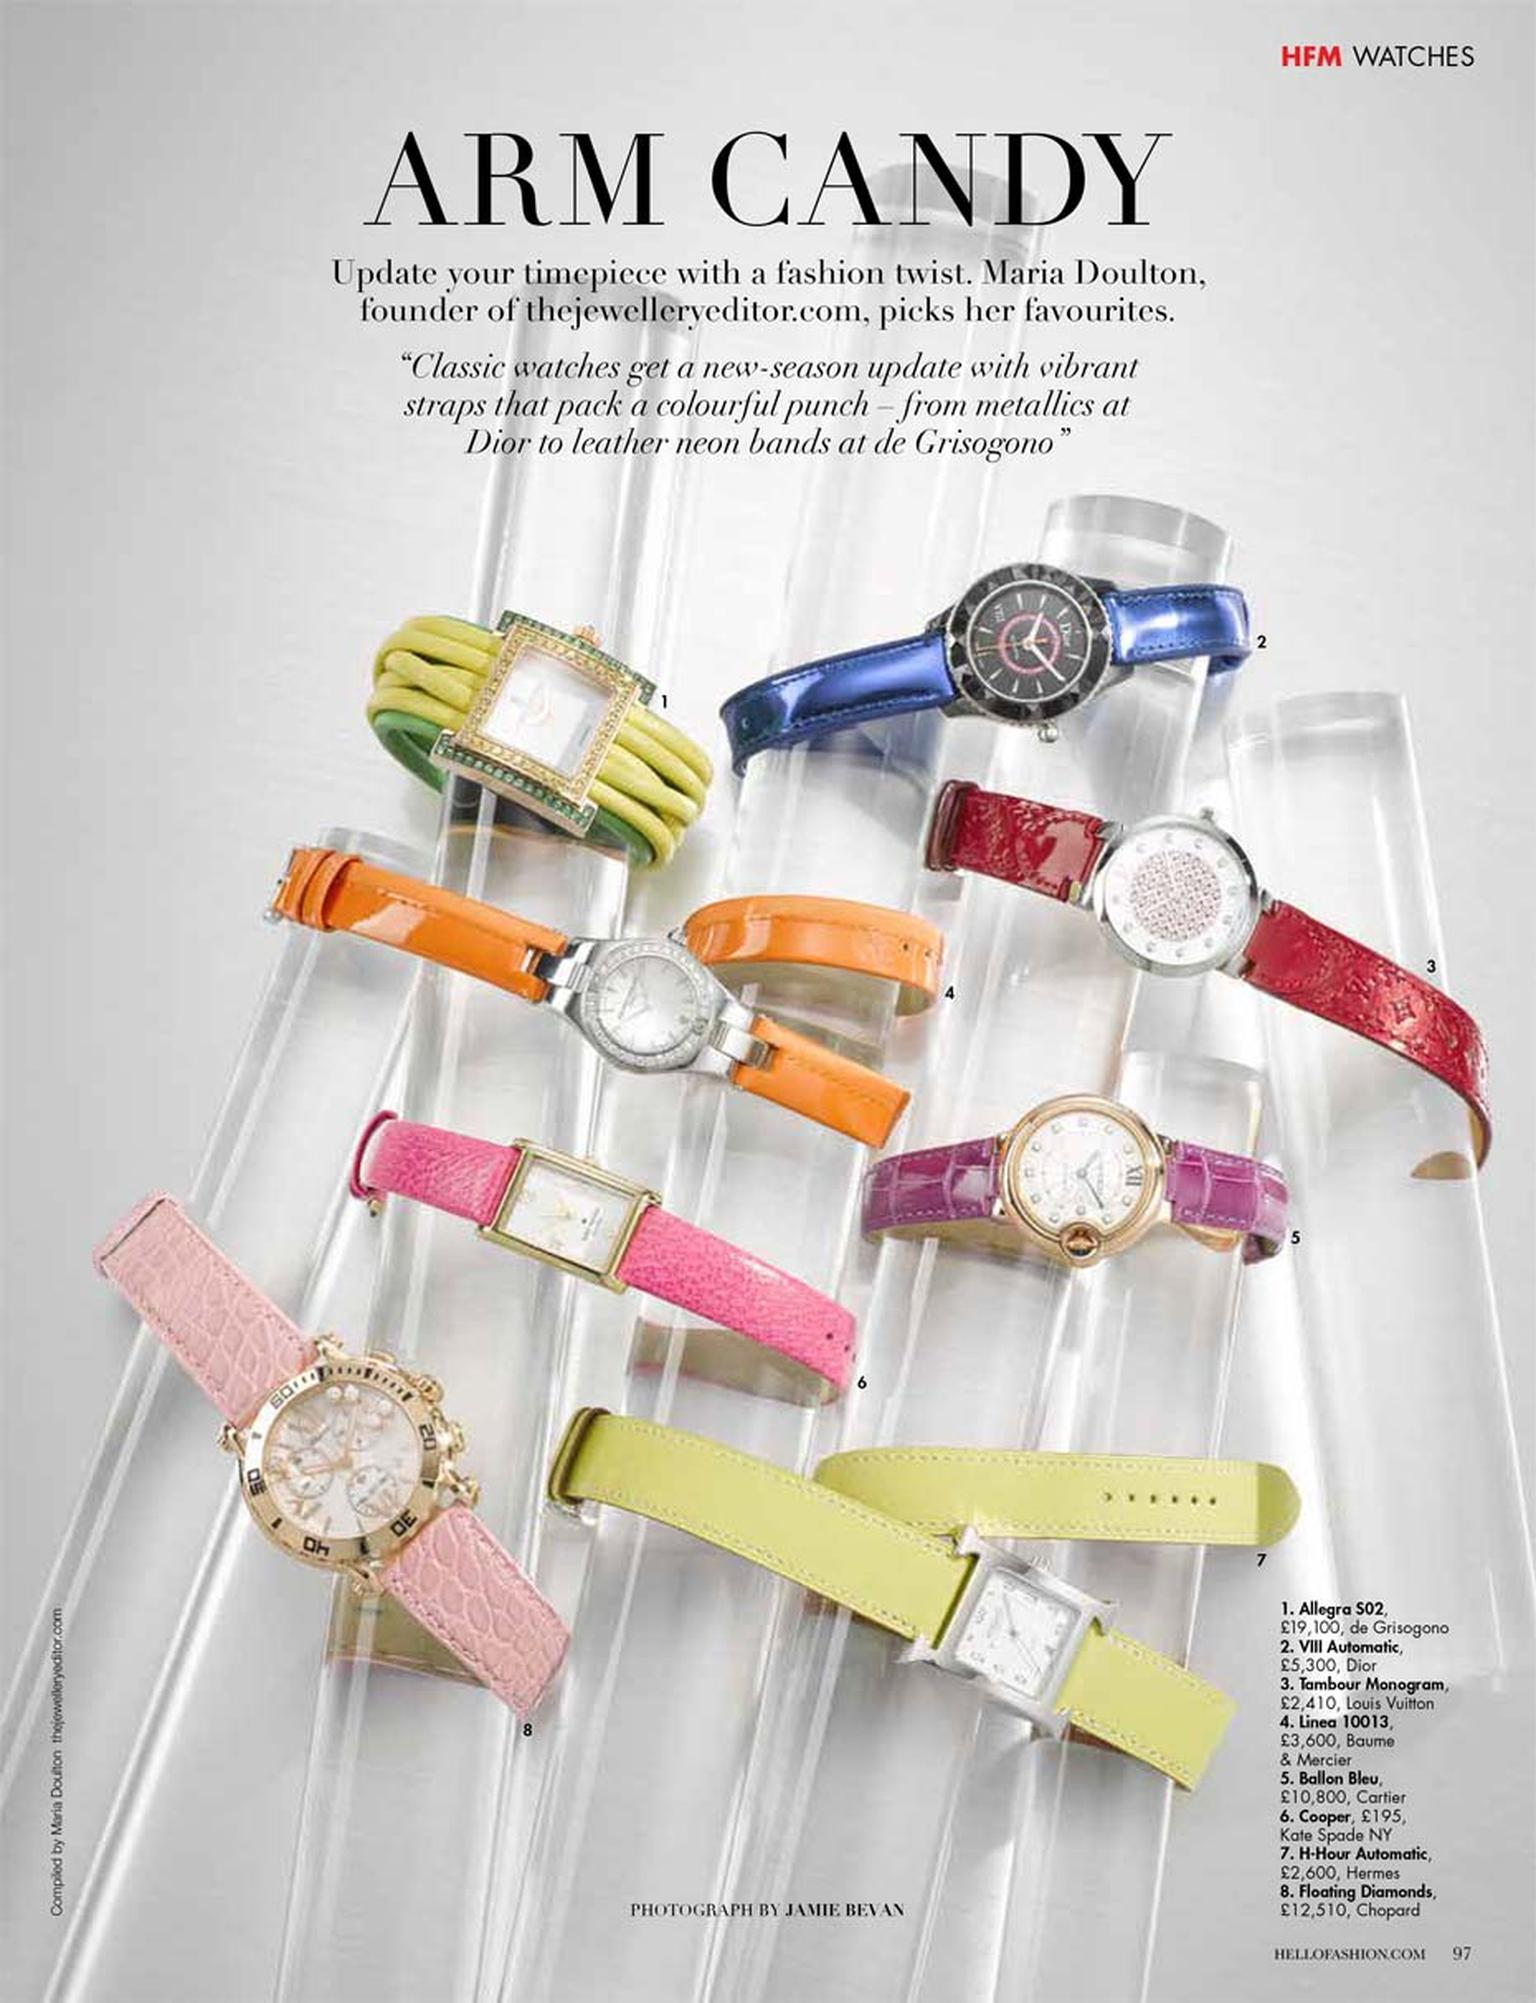 Maria at The Jewellery Editor picked her favourite colourful watches for a photo shoot for Hello! Fashion magazine.